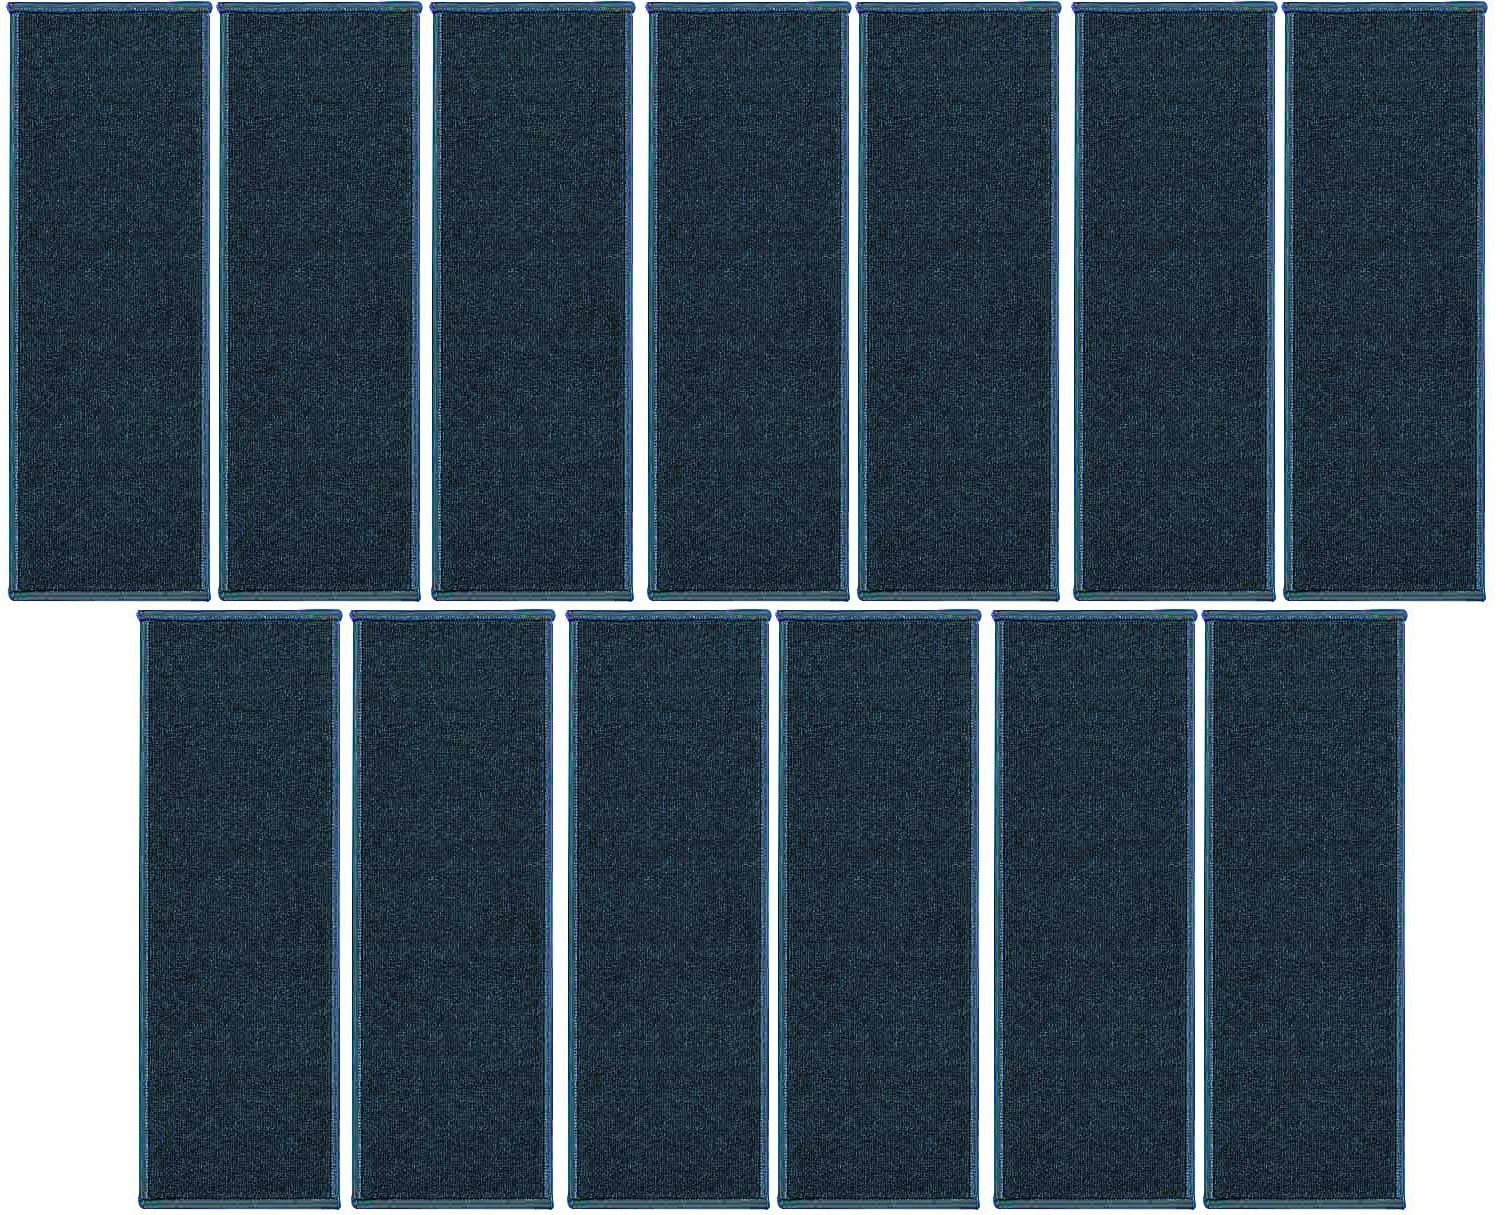 Ambiant Indoor Outdoor StairThreads Teal 8'' x 26'' (set of 13) - Area Rug